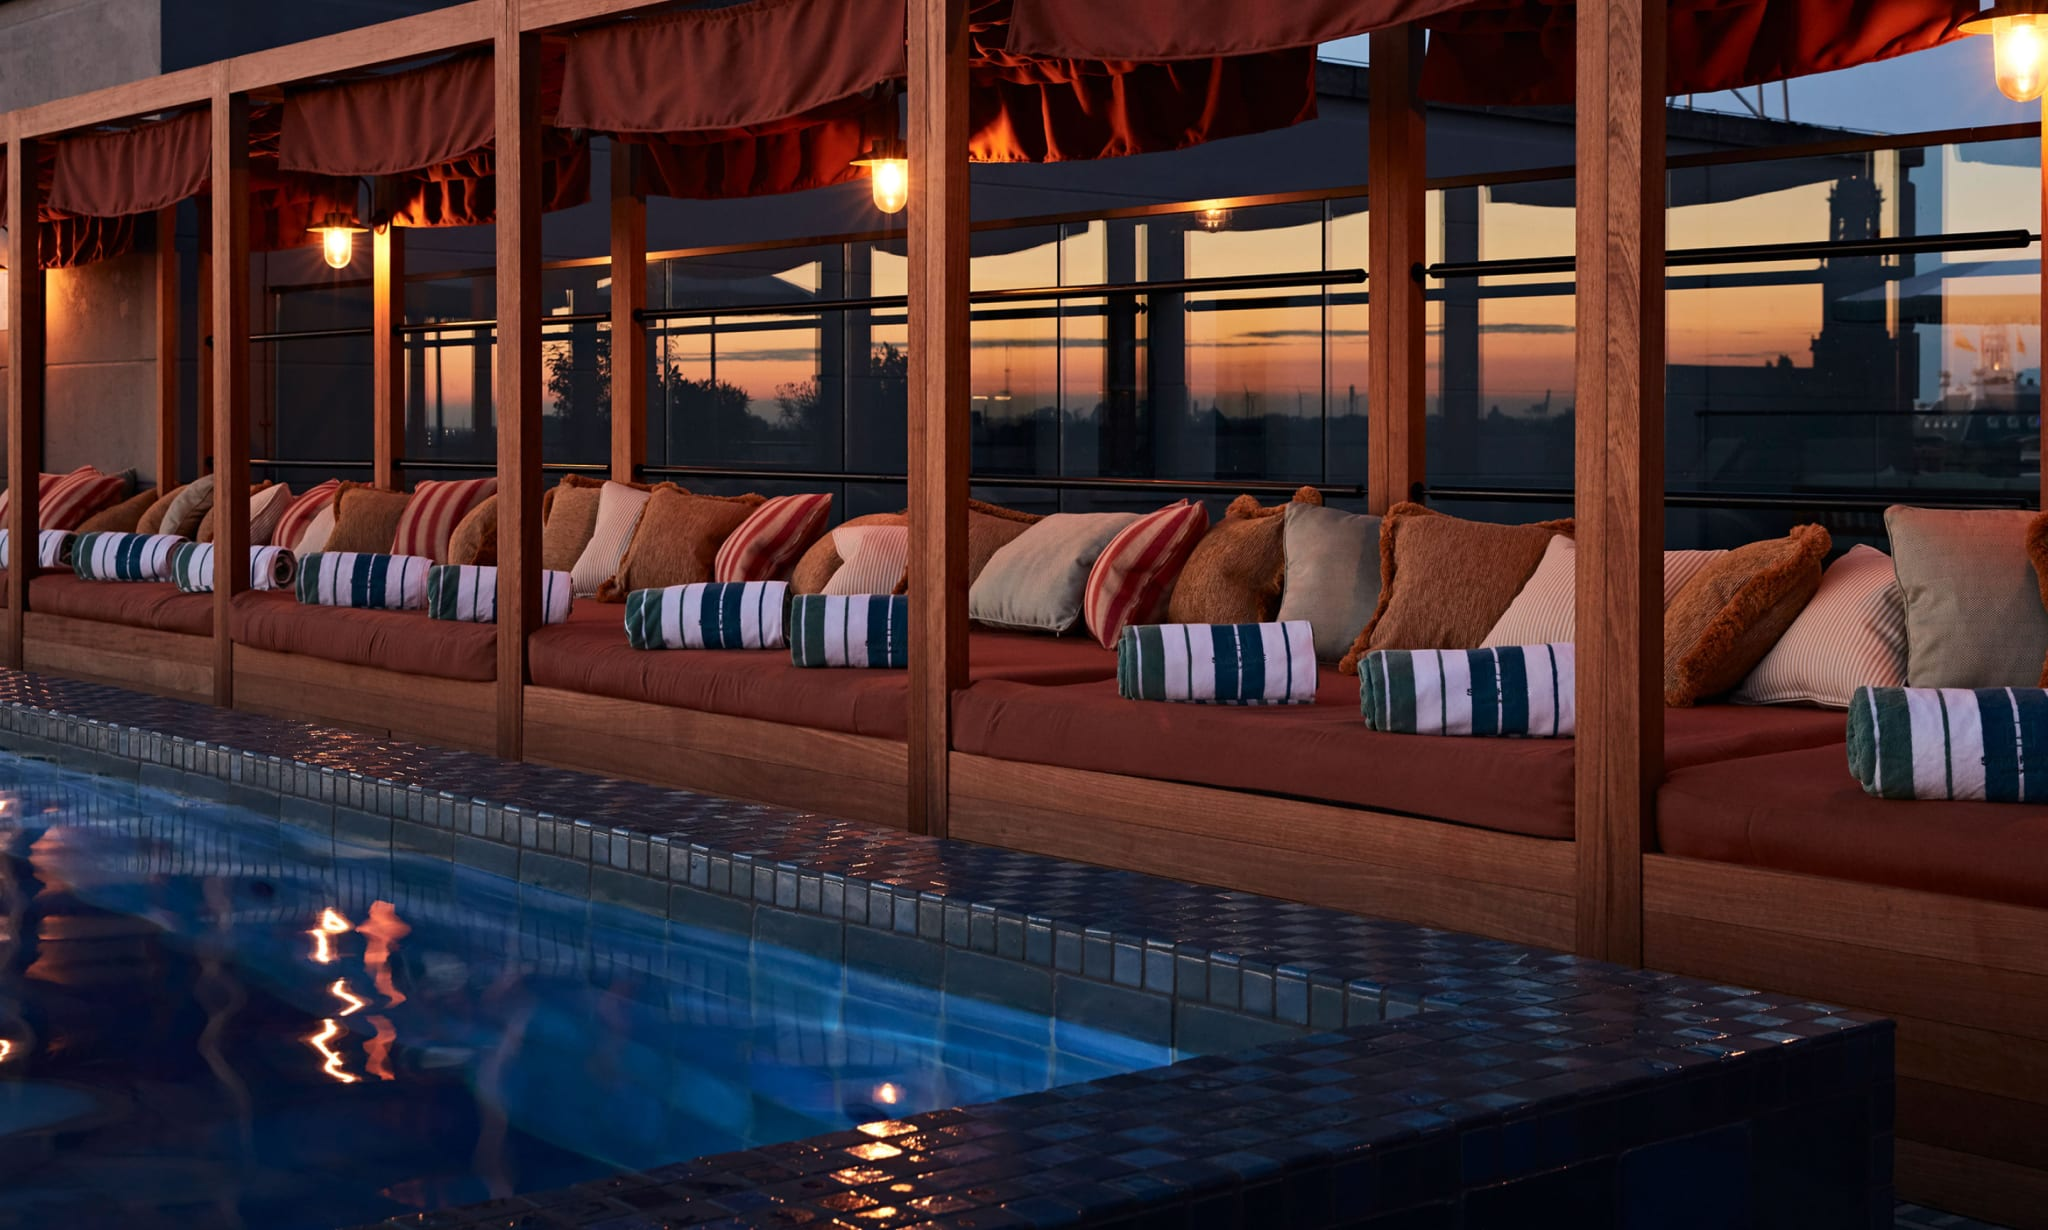 A rooftop pool with daybeds at sunset.